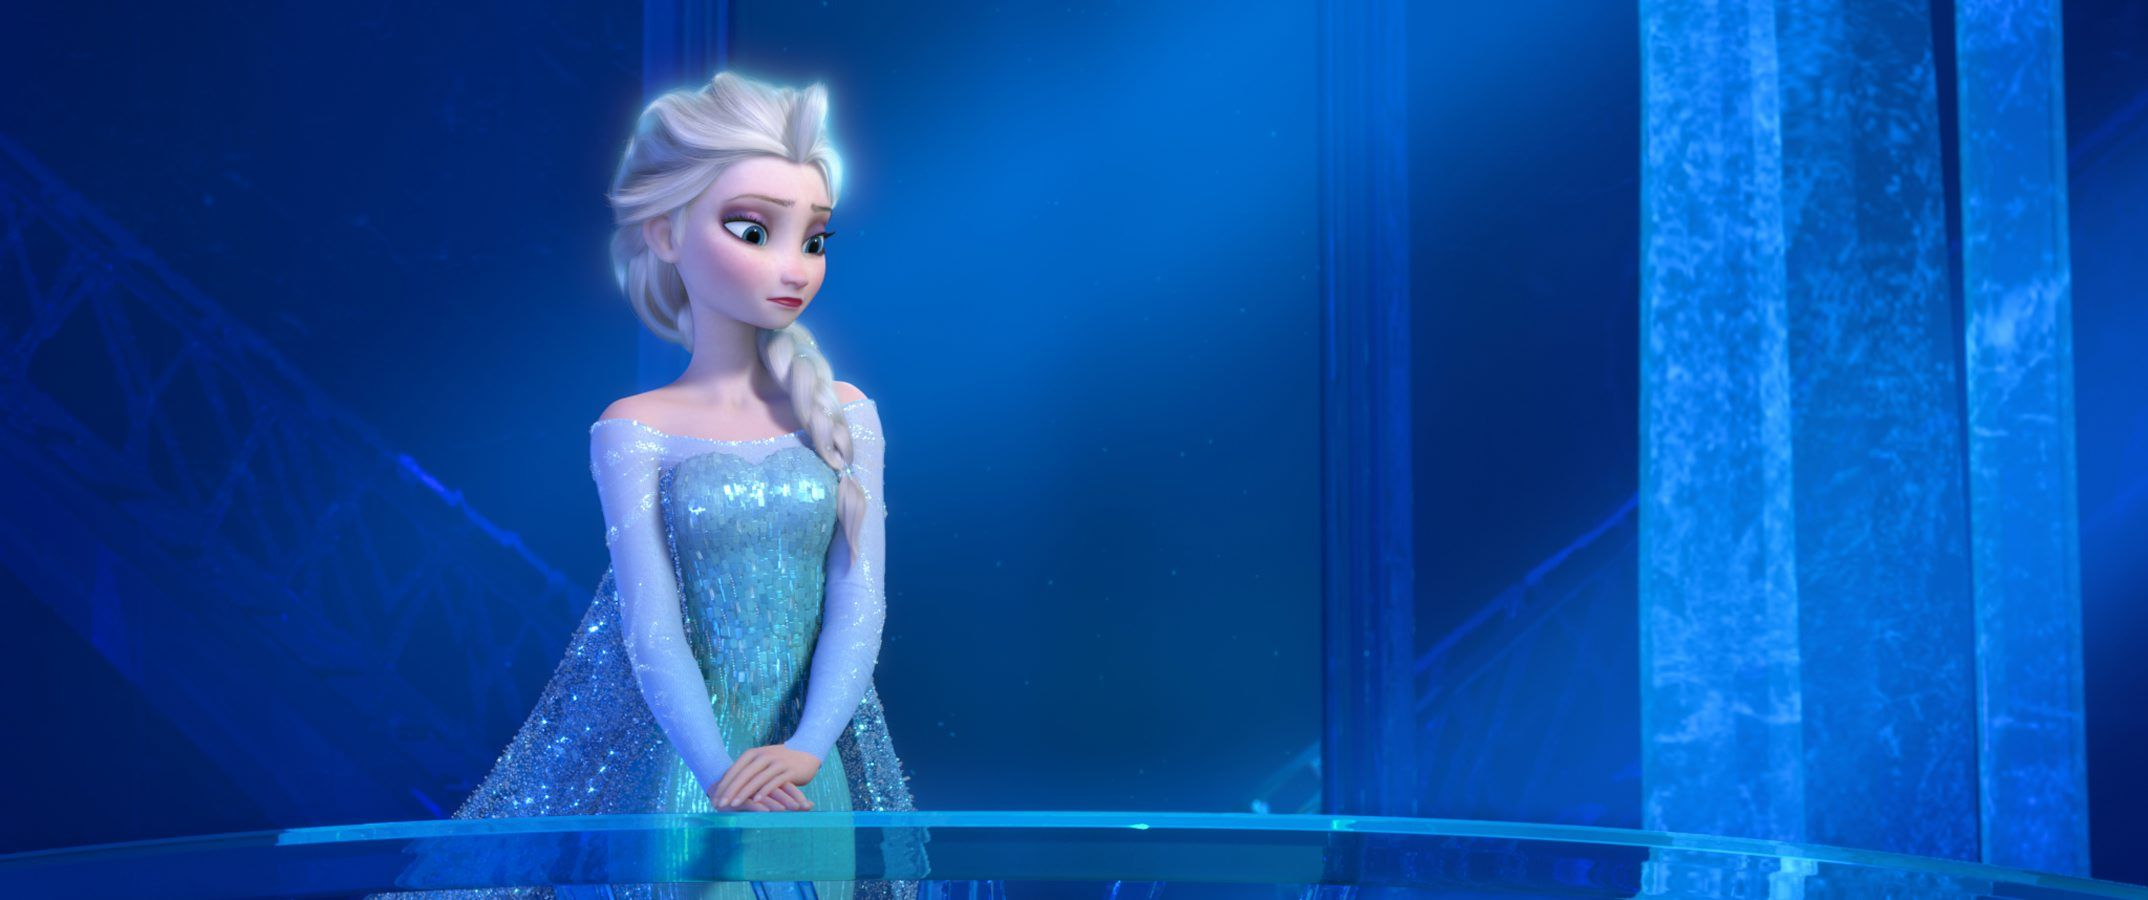 Ranked: Disney Heroines Who Didn't Need To Be Saved - Fame10